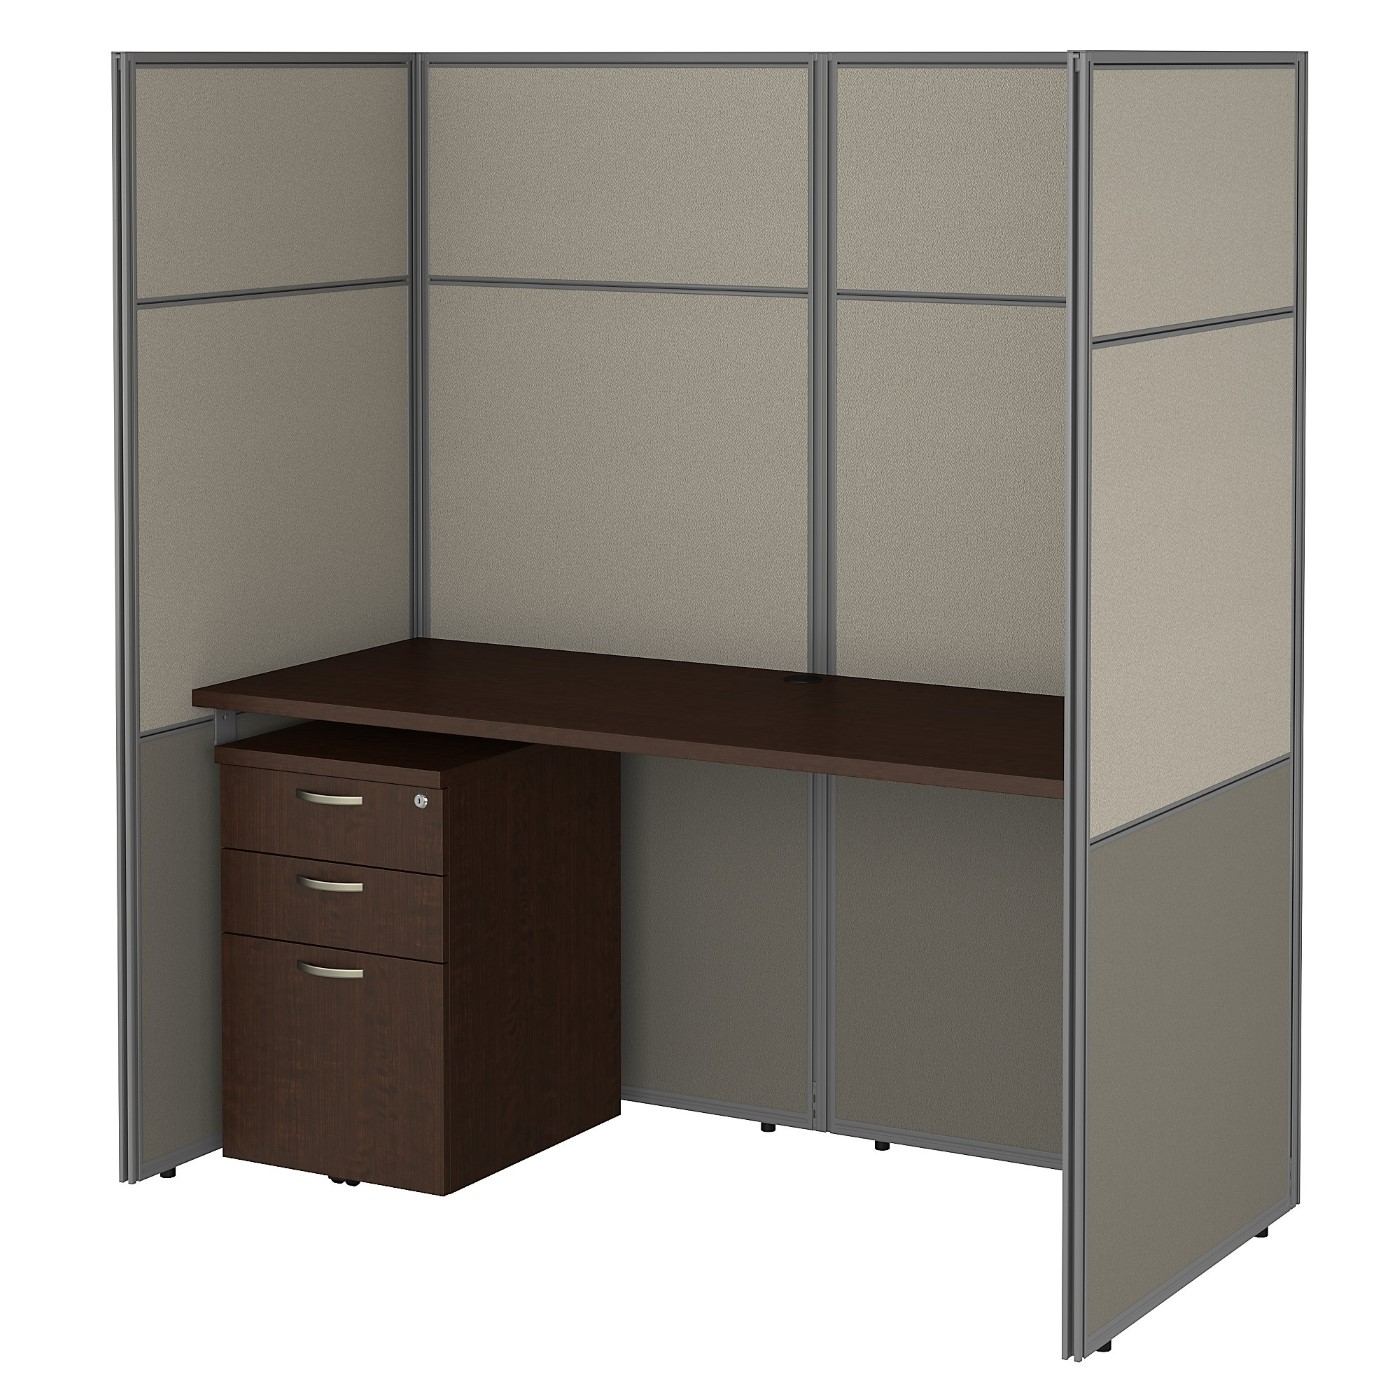 BUSH BUSINESS FURNITURE EASY OFFICE 60W CUBICLE DESK WITH FILE CABINET AND 66H CLOSED PANELS WORKSTATION. FREE SHIPPING 30H x 72L x 72W.